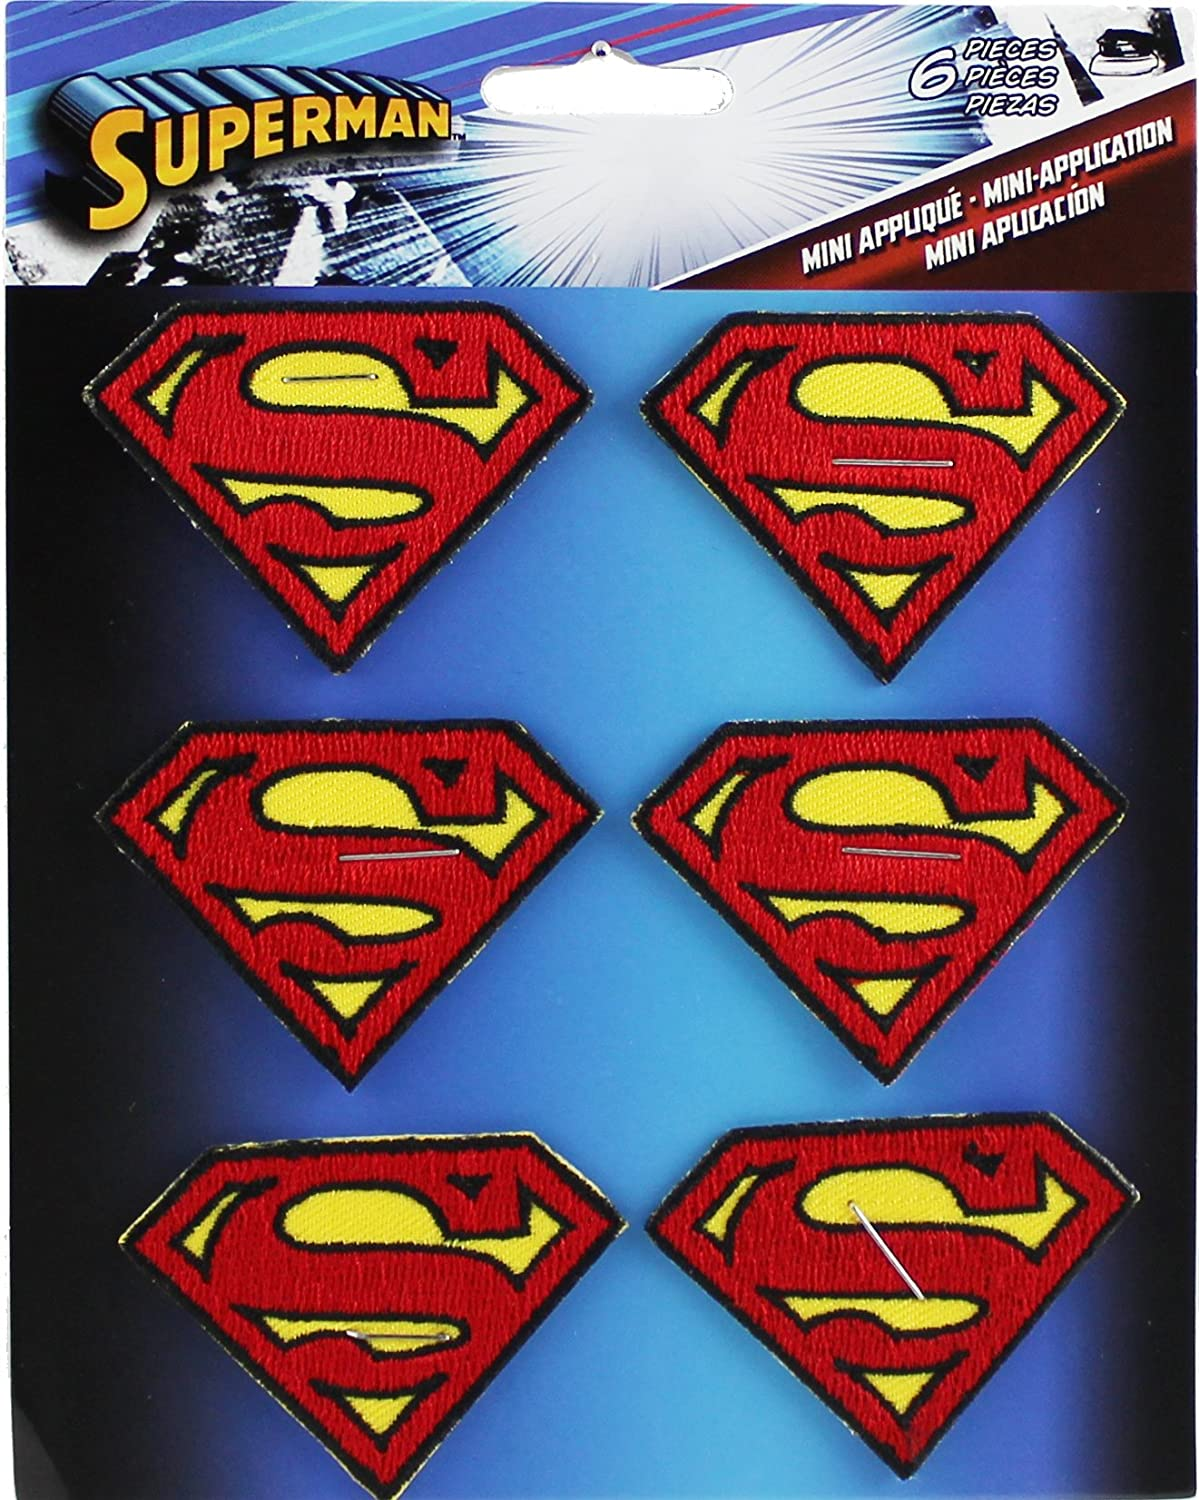 CD Visionary Reservation Application DC Comics Superman Re Discount is also underway 6 Logo Set Patch